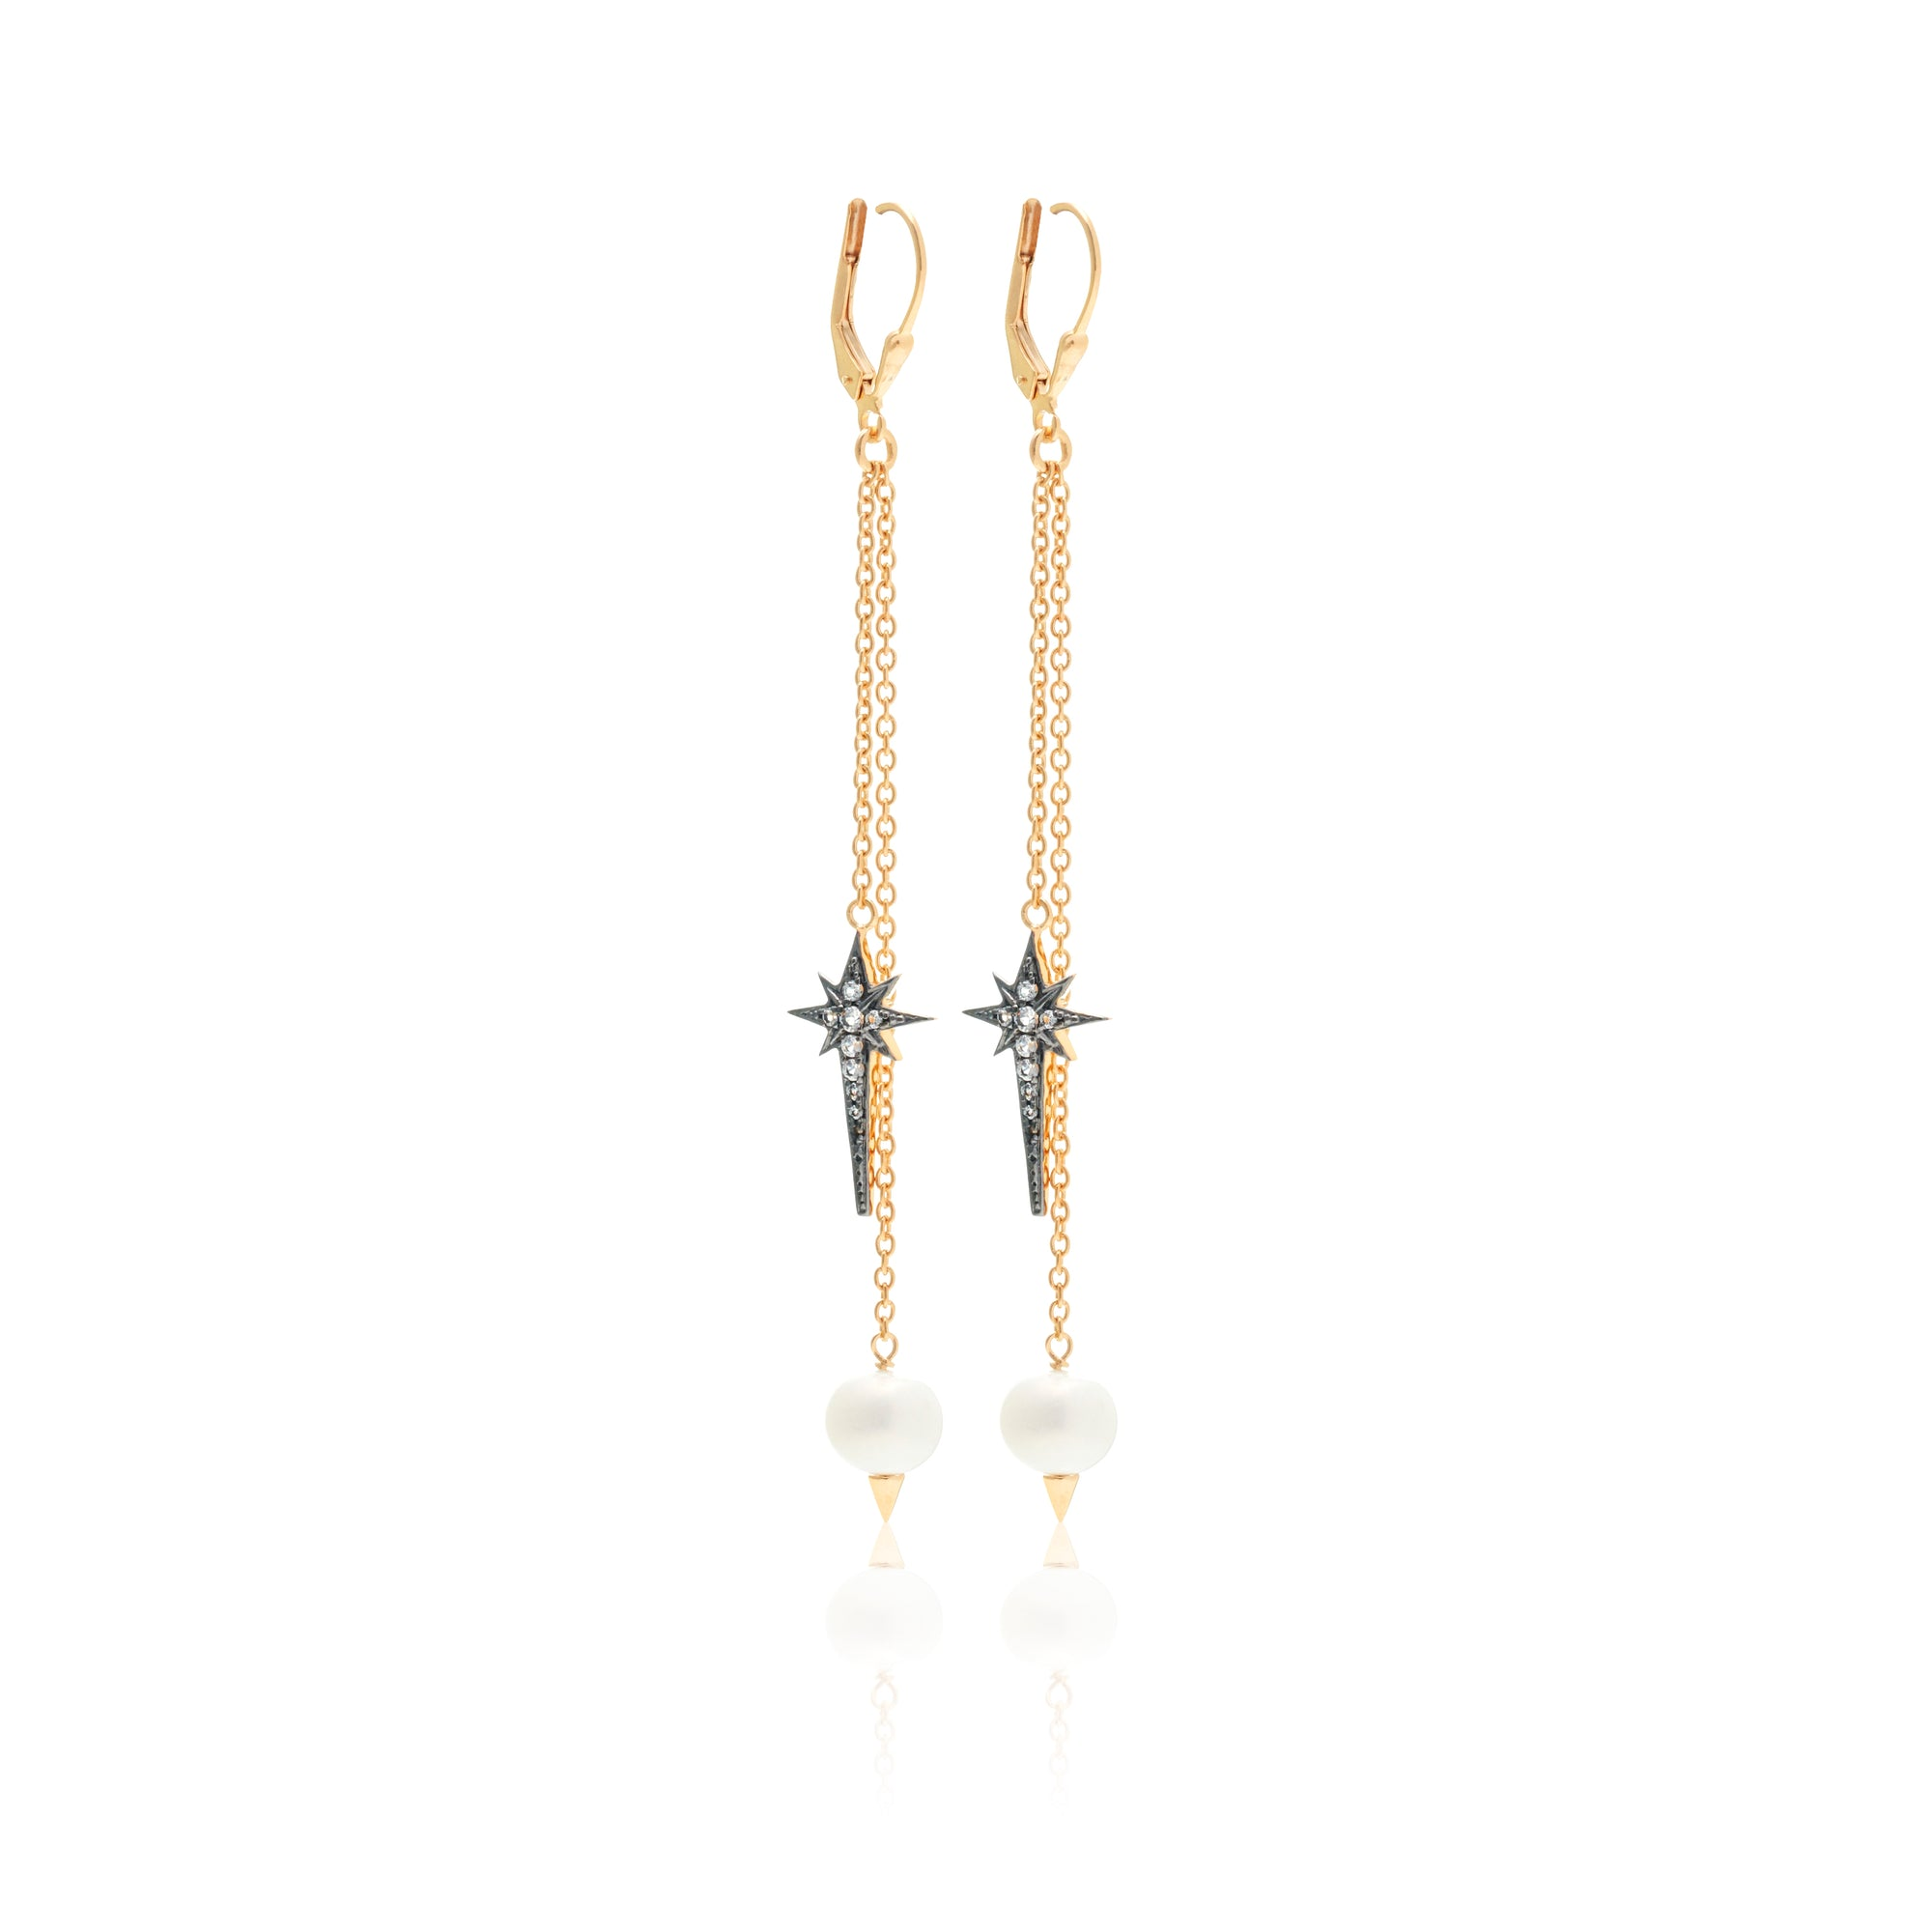 Silk & Steel Living The Dream earrings gold and pearl